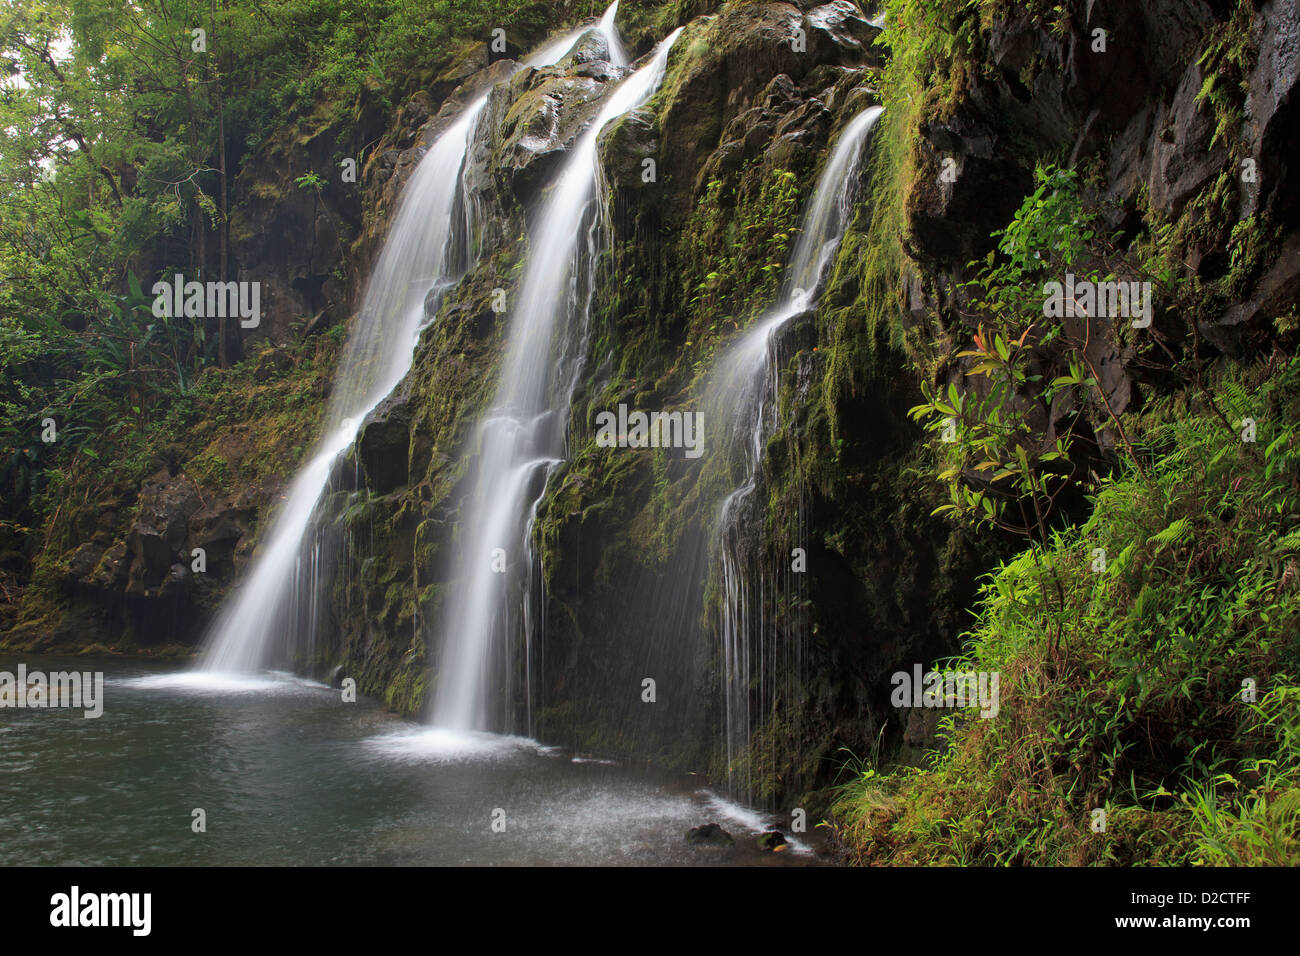 waterfall-along-the-road-to-hana-maui-D2CTFF.jpg